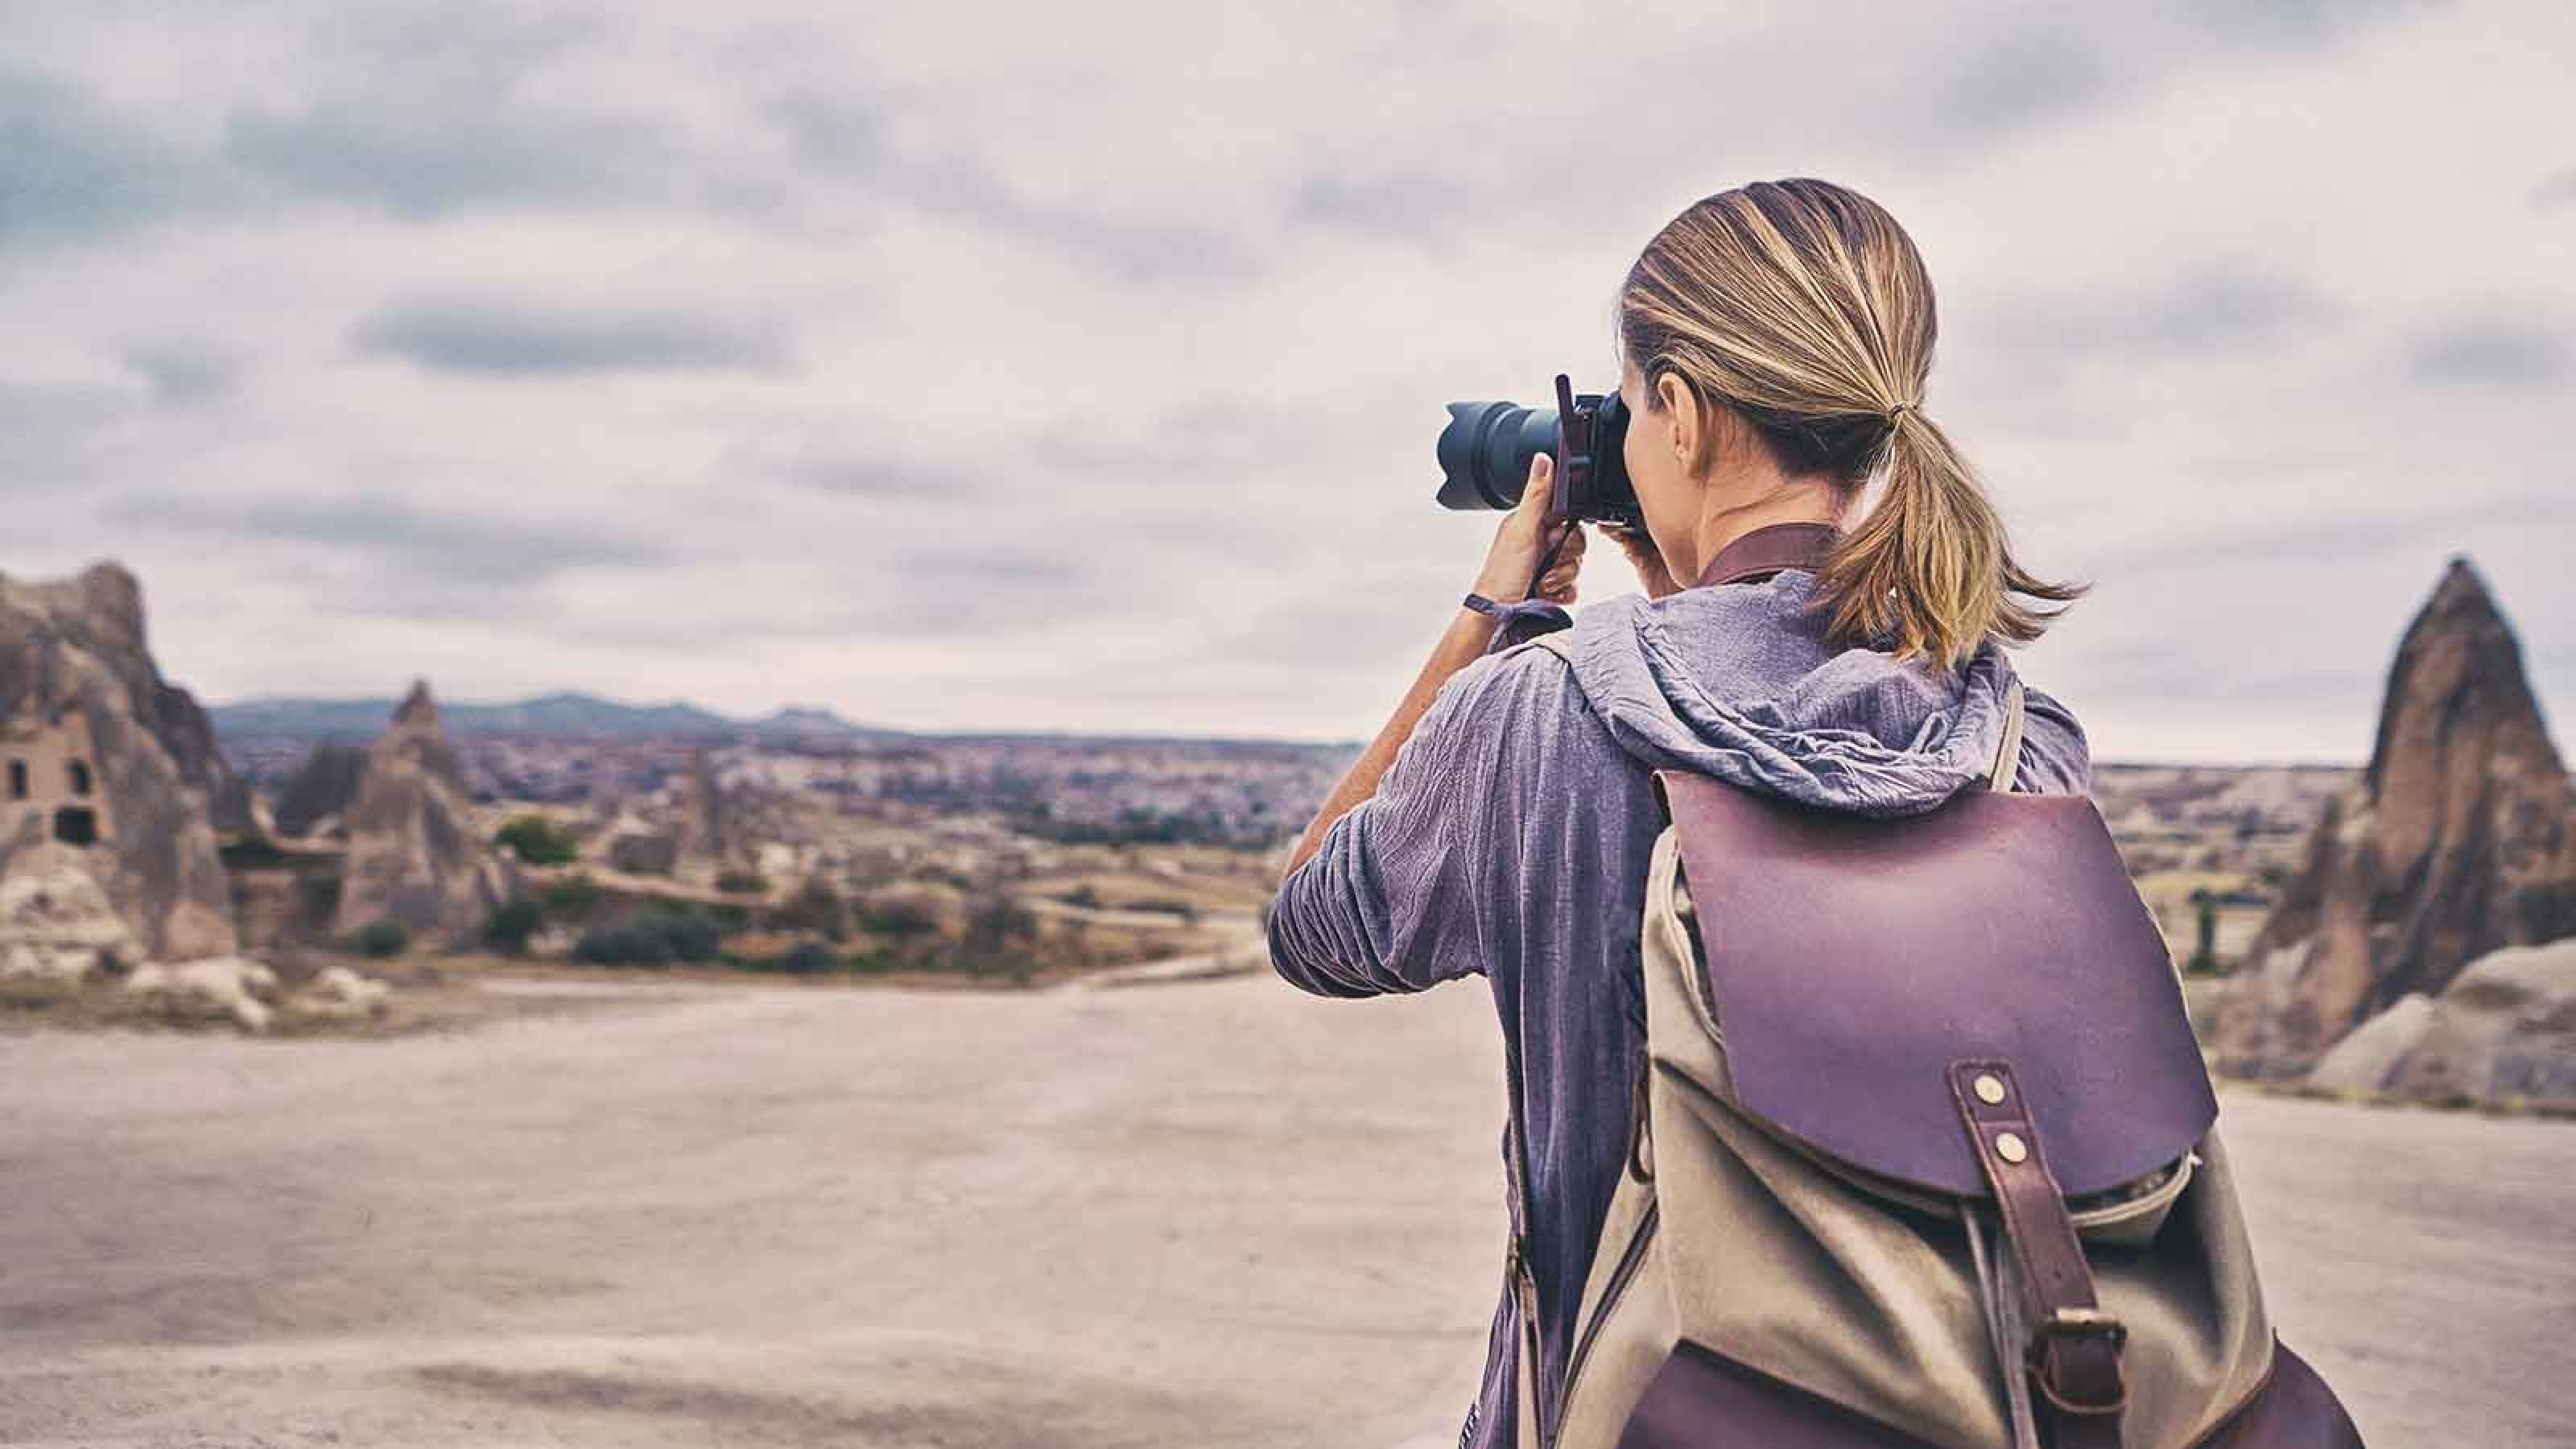 7 Common Travel Photography Mistakes (and How to Avoid Them)